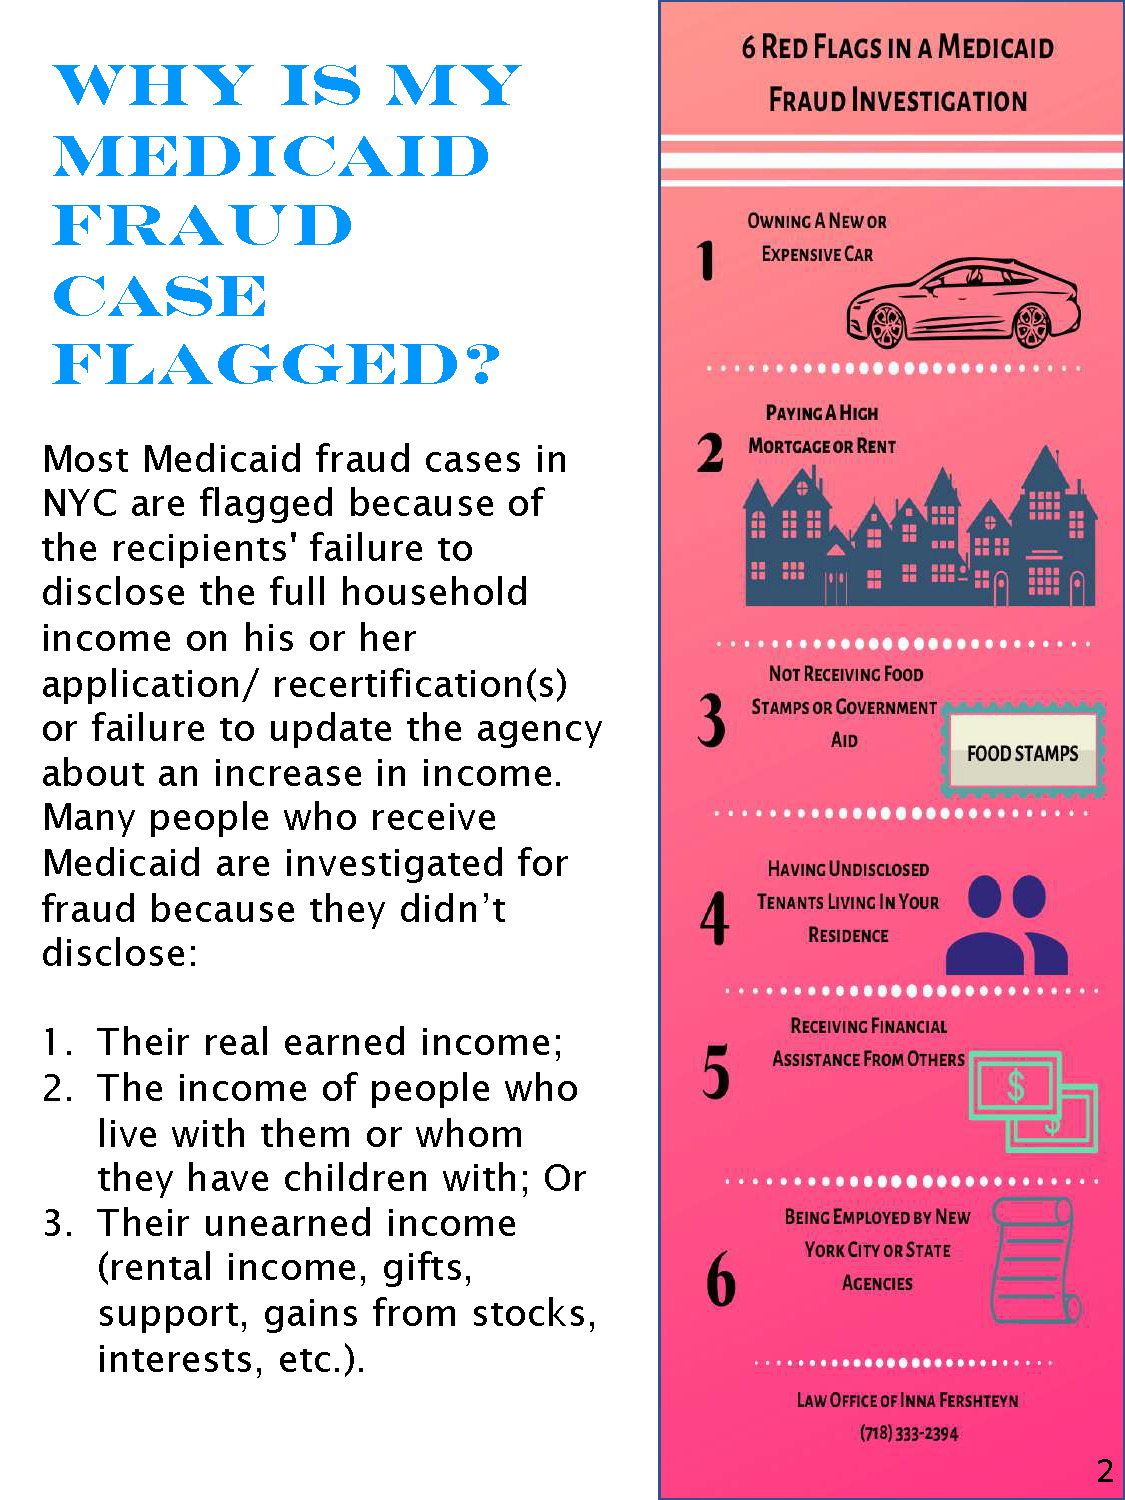 why-is-my-medicaid-fraud-case-flagged